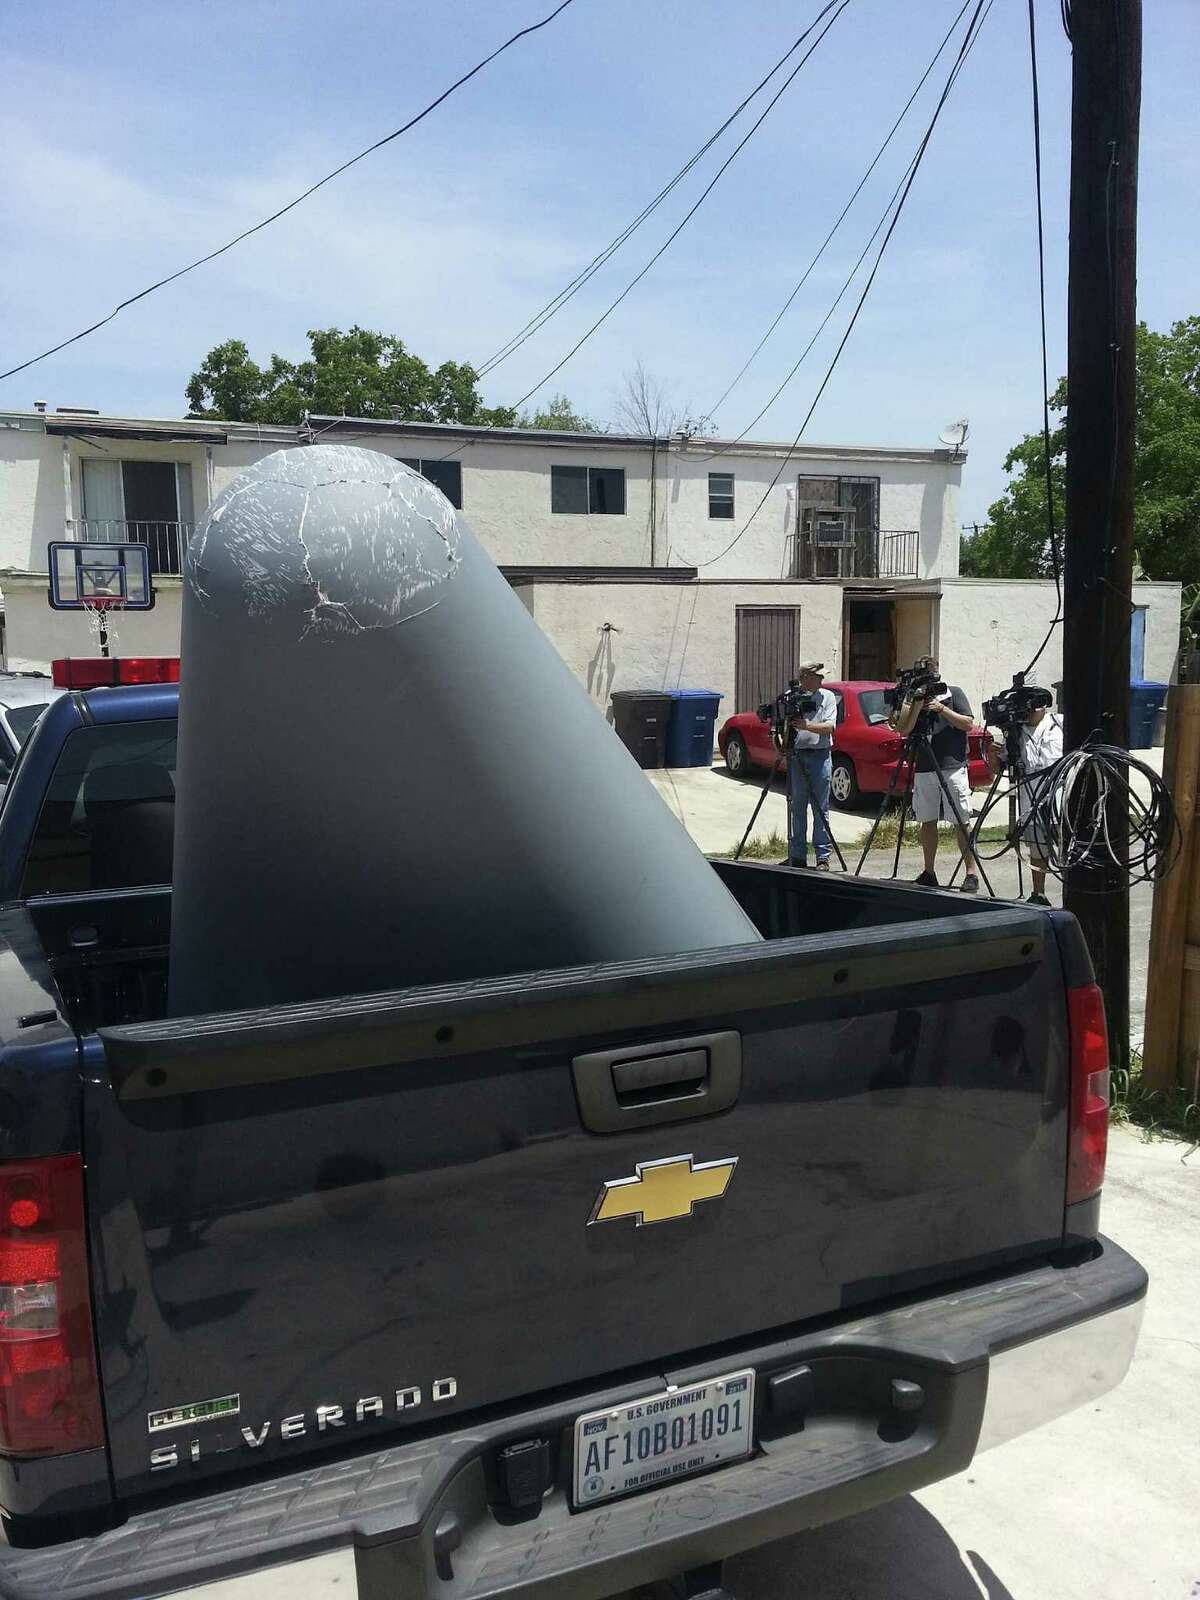 The plane piece sits in an Air Force pickup before being transported. The plane had taken off from Port San Antonio.